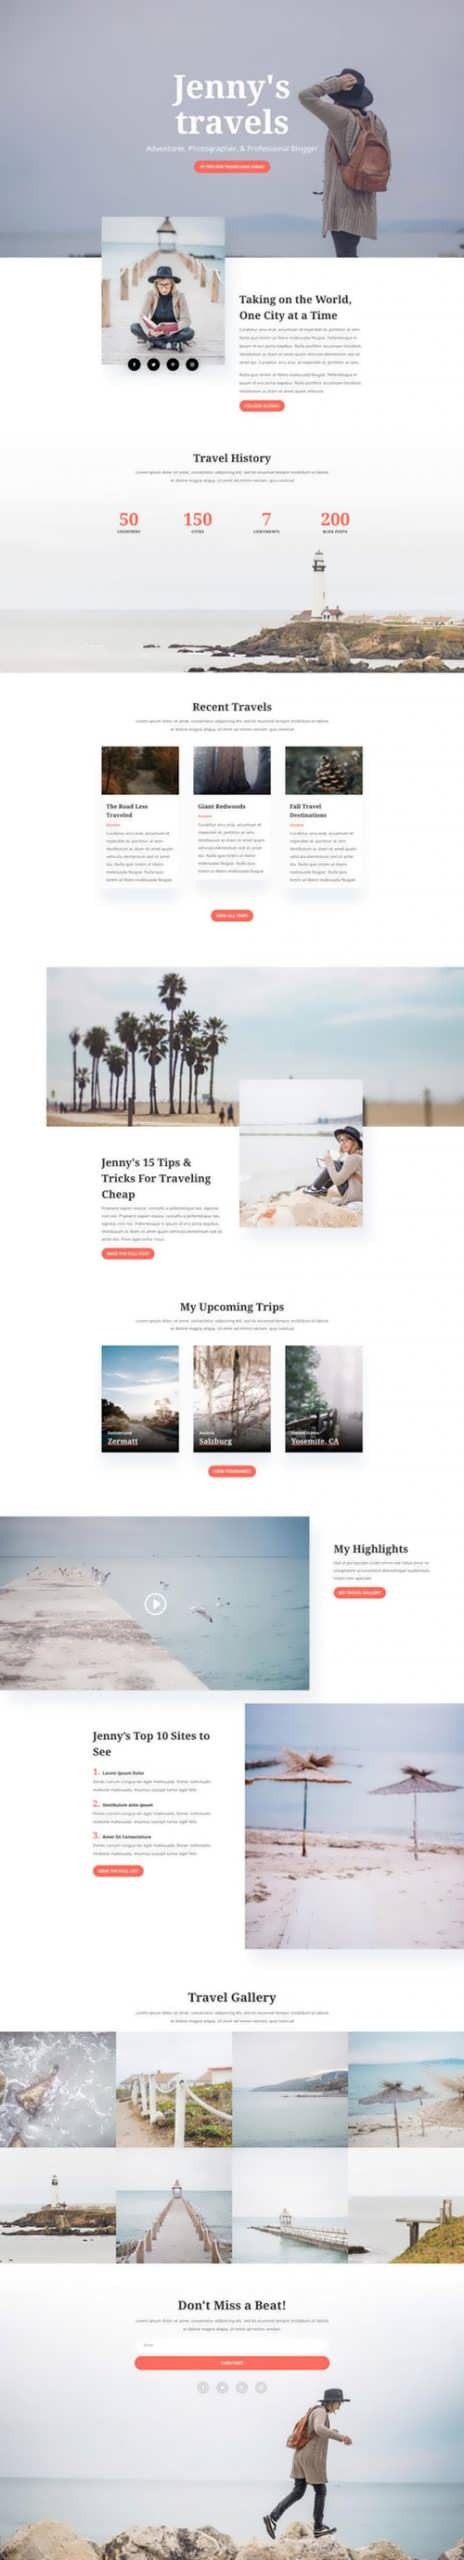 travel blog landing page scaled